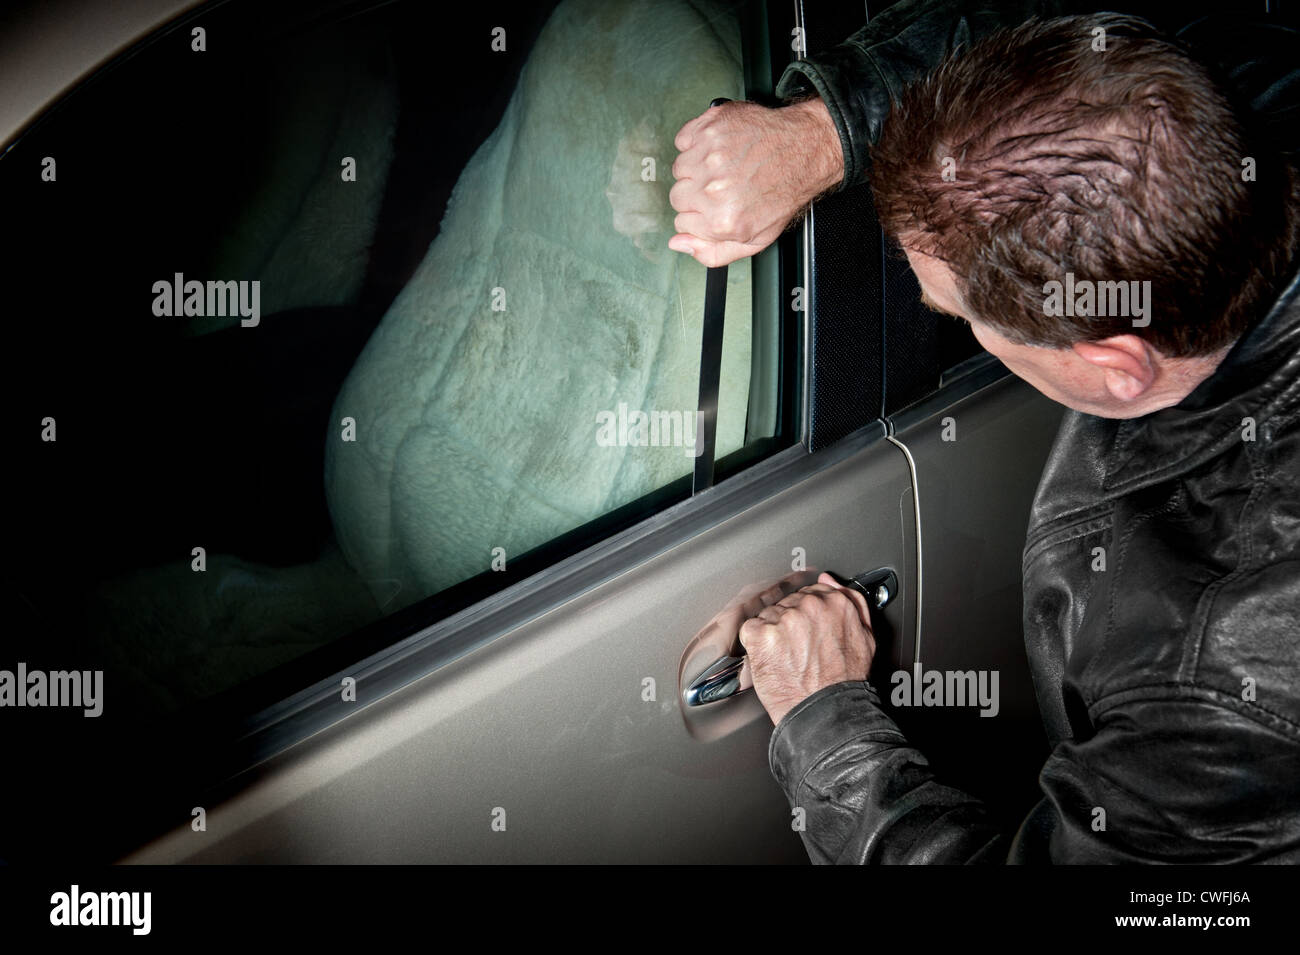 A male car thief uses a flat metal lock pick to break into a vehicle. - Stock Image